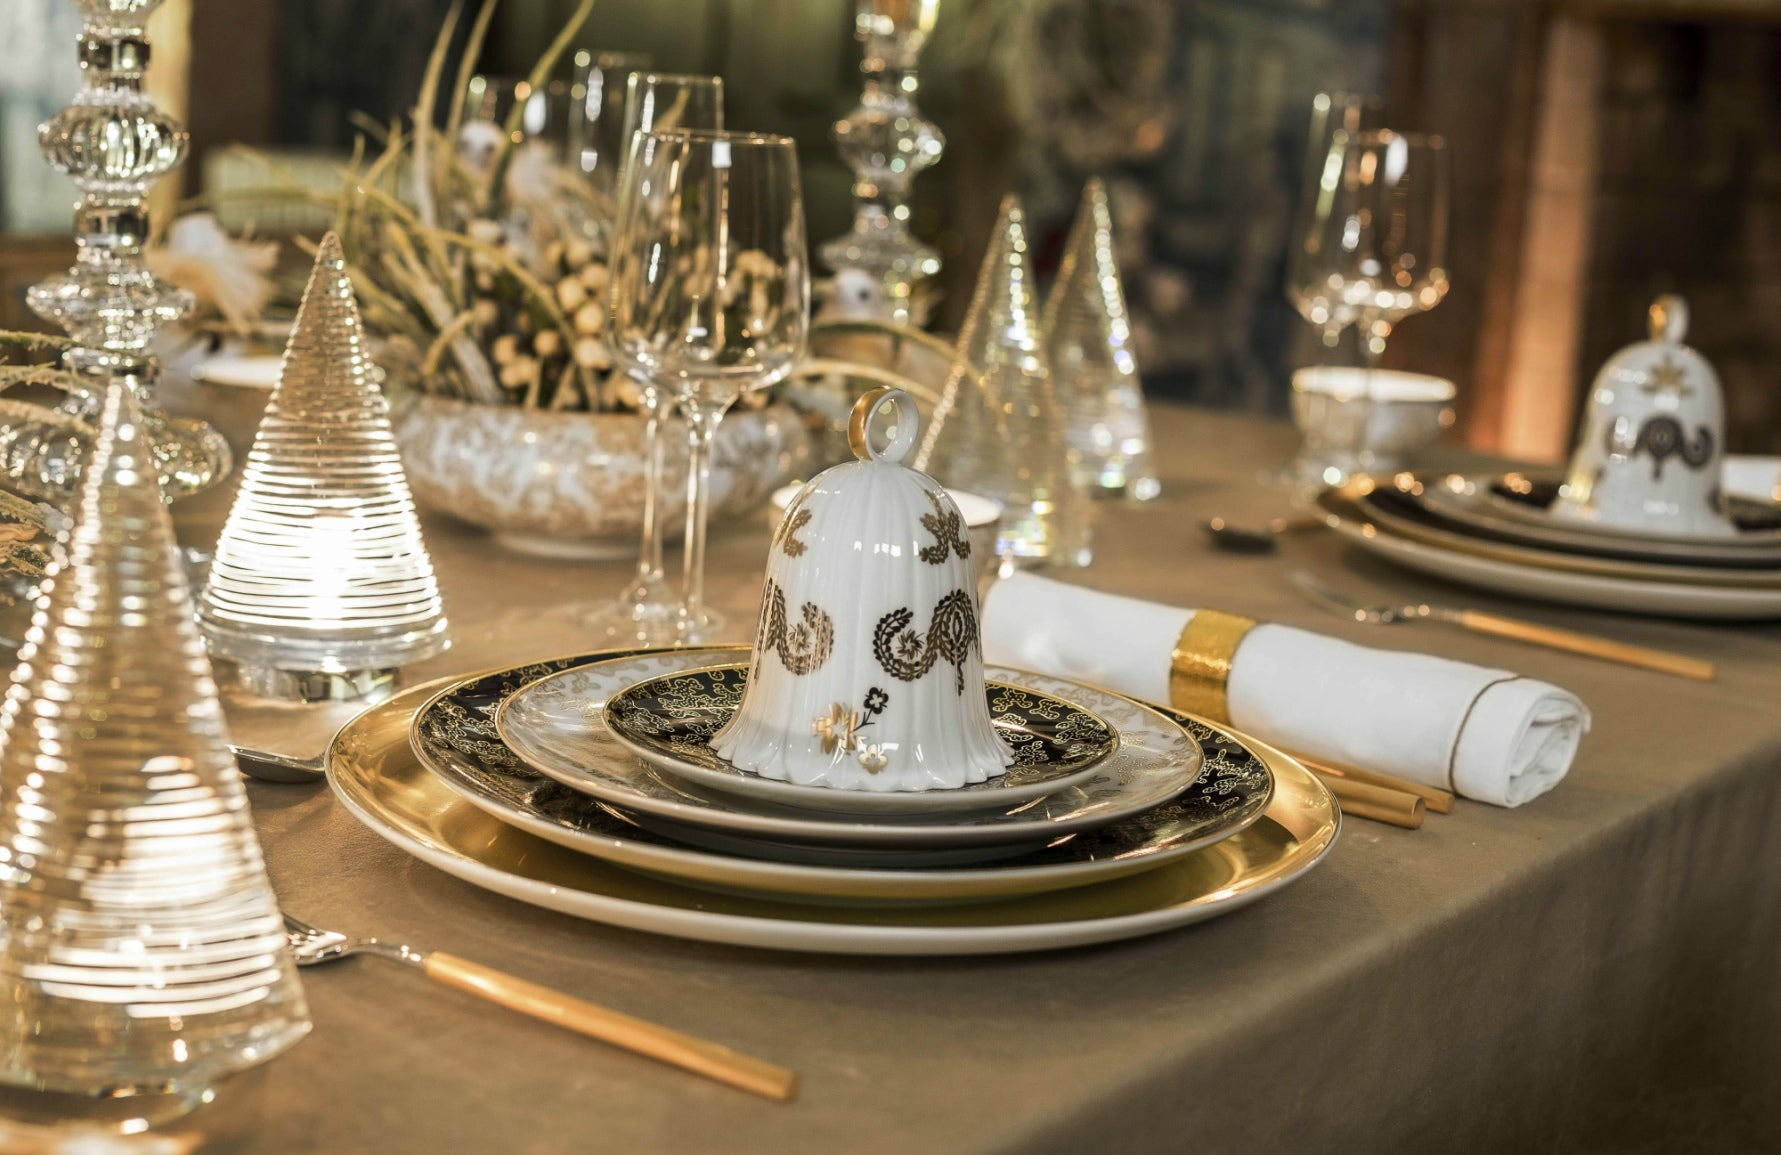 Luxury Christmas Table Setting | Luxury Gold Tableware | Shop Vista Alegre at LuxDeco.com